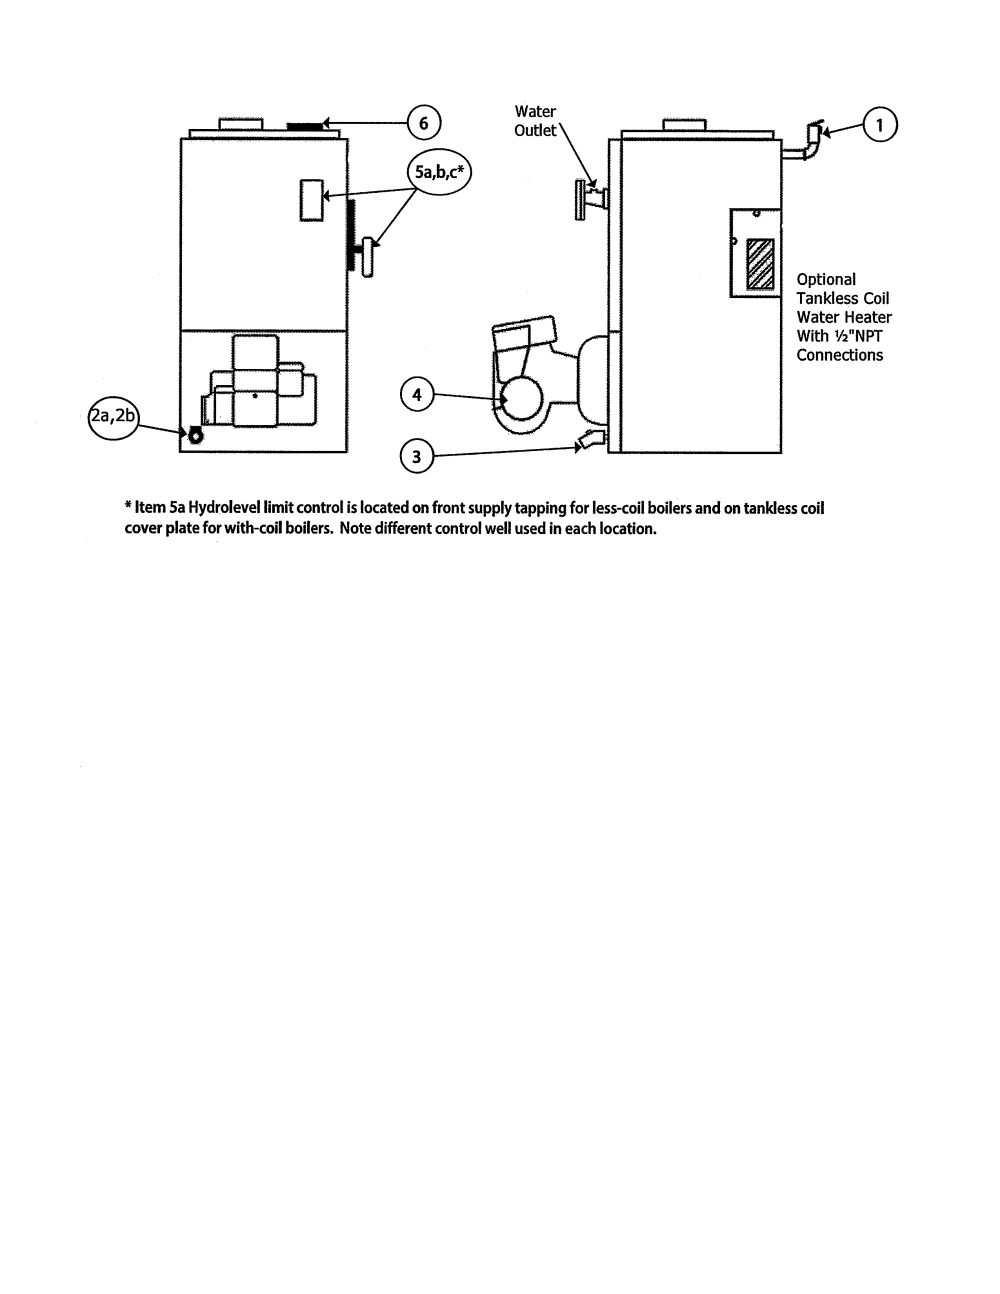 medium resolution of dunkirk 4ew150zbtp optional tankless coil water heater diagram